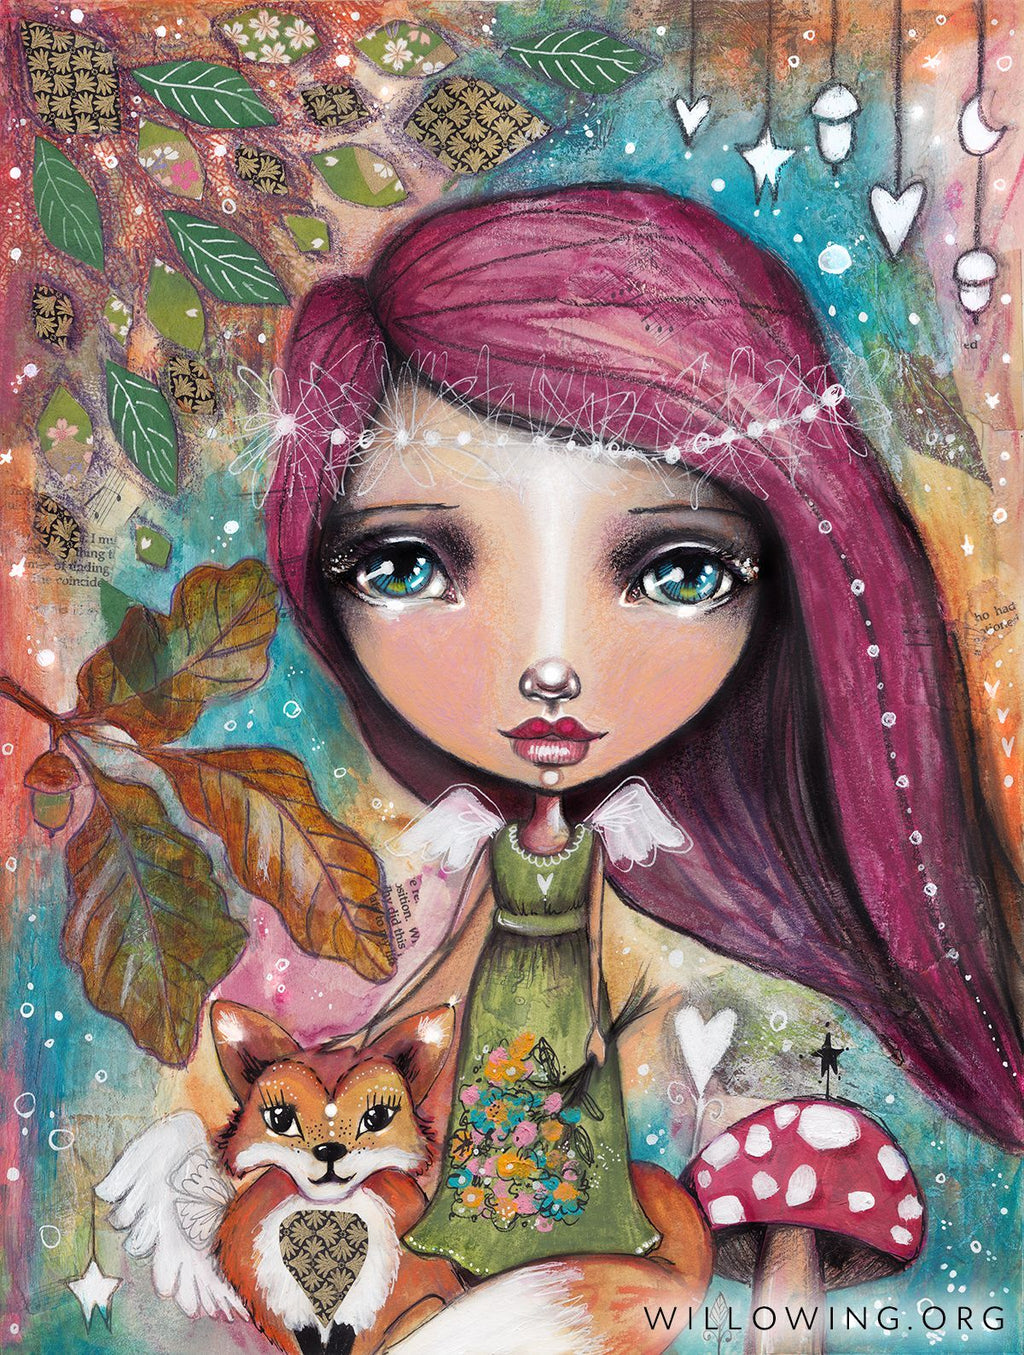 Willowing Arts Autumn Fairy with Fox Diamond Painting Kit - The Diamond Painting Factory